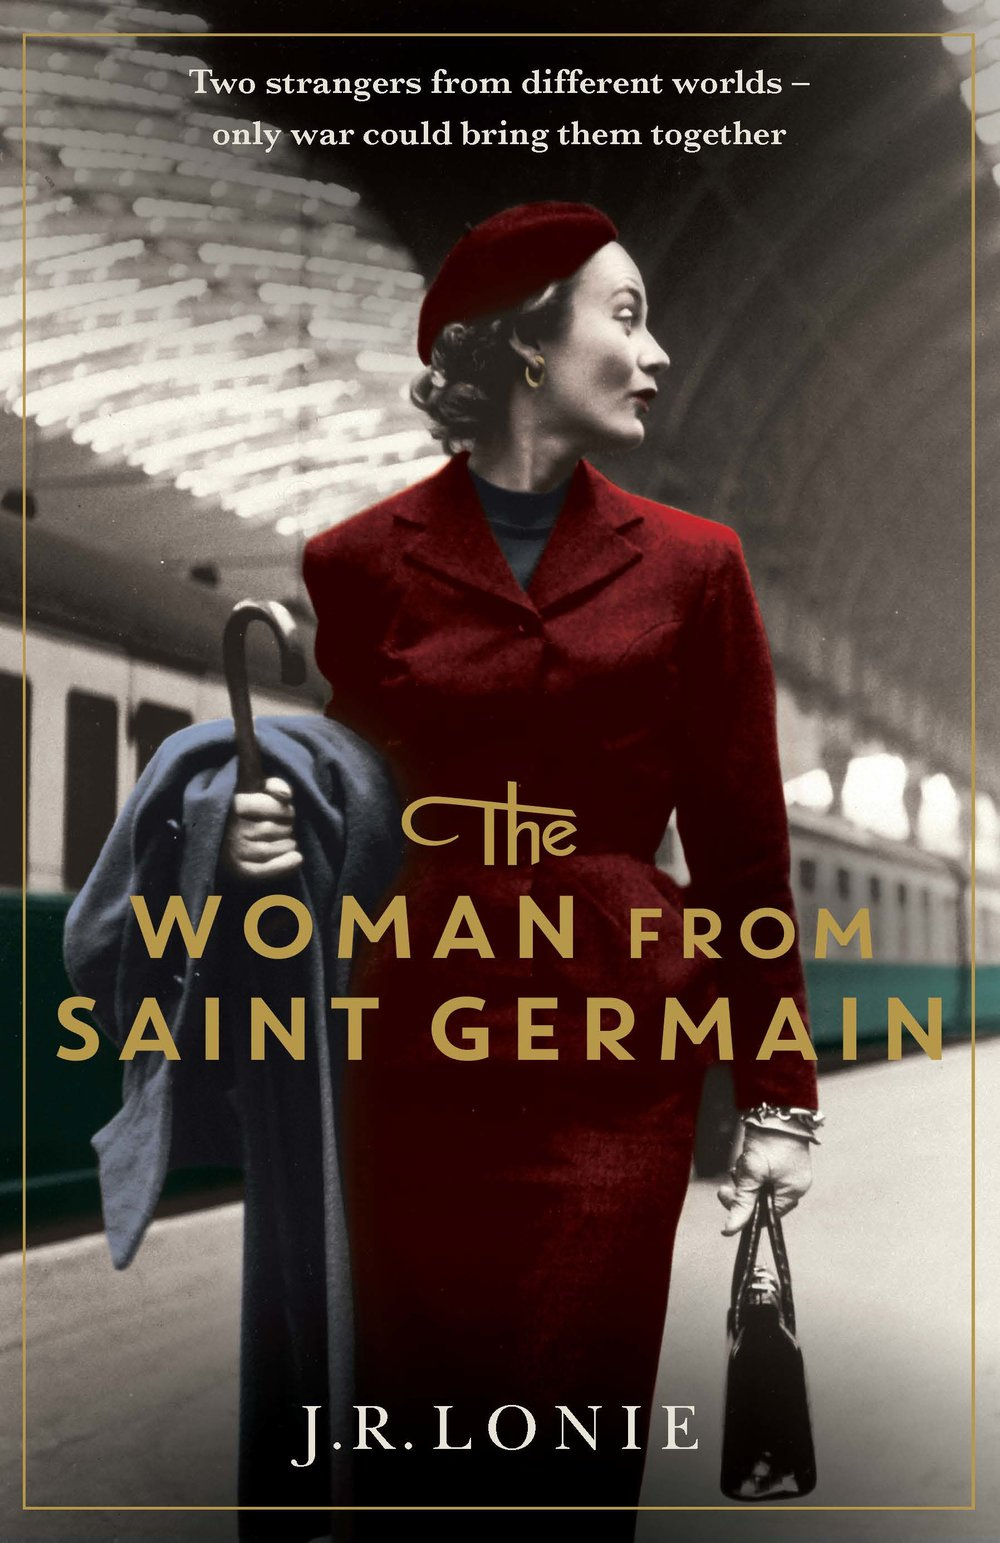 The Woman From Saint Germain  By J.R.Lonie Releases March 2019 (Simon & Schuster)